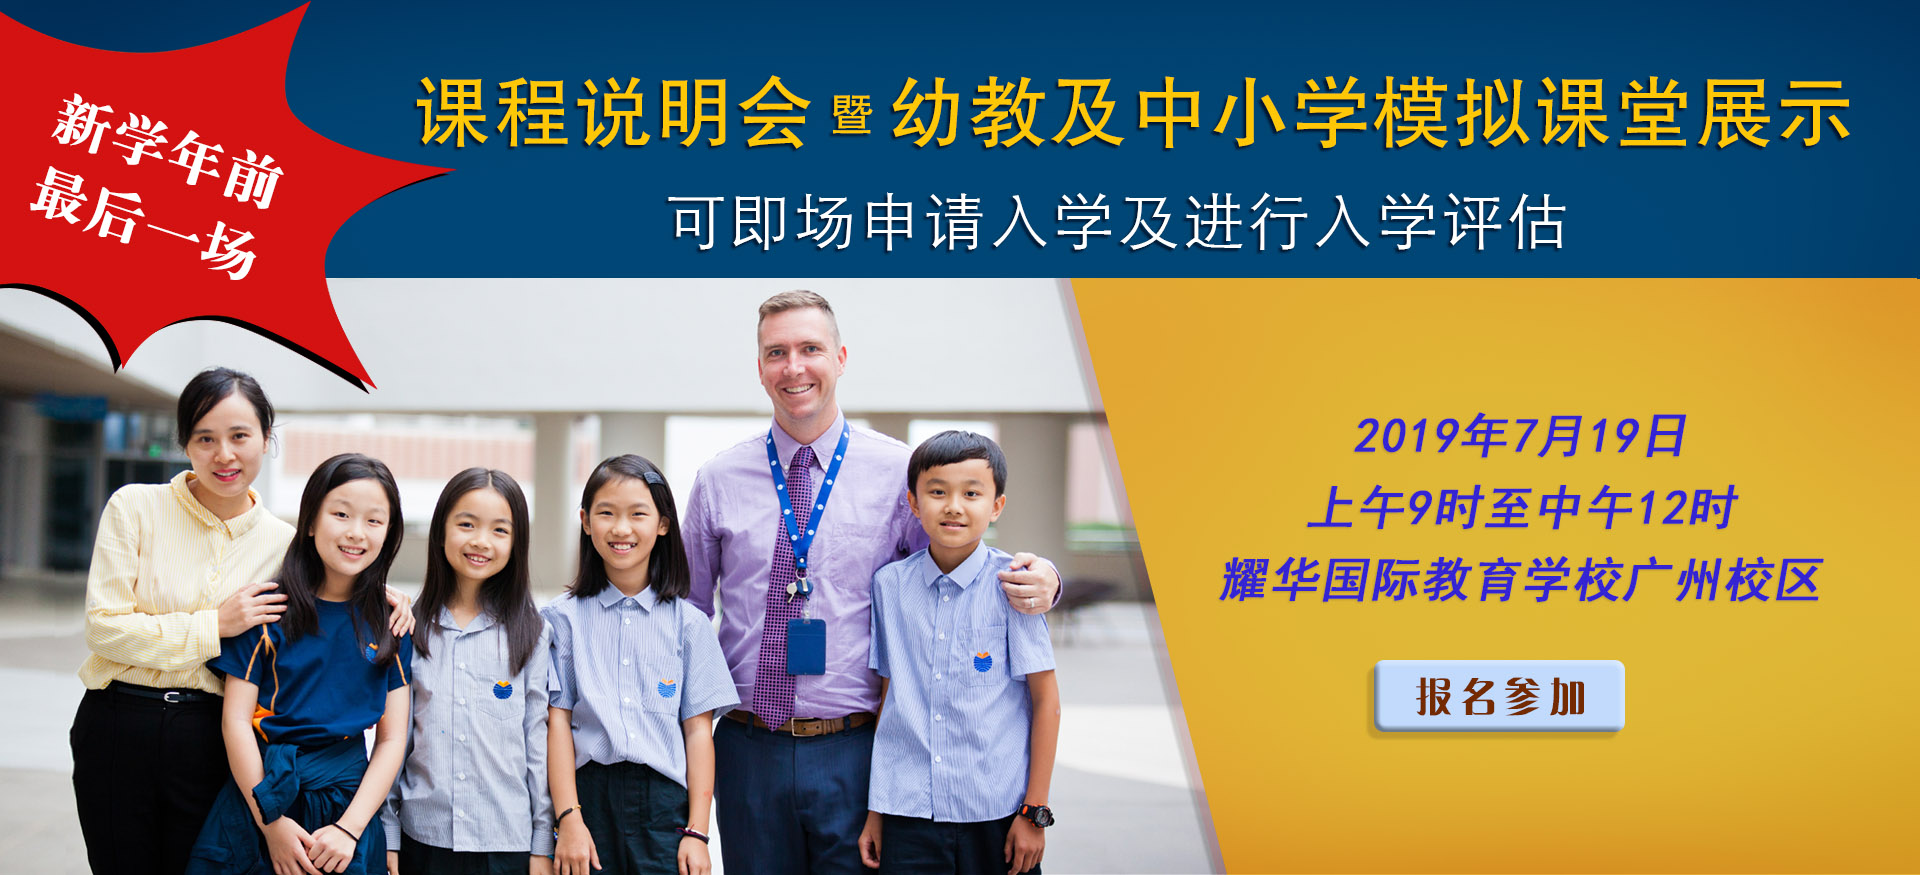 20190719-ywies-gz-info-session-cn